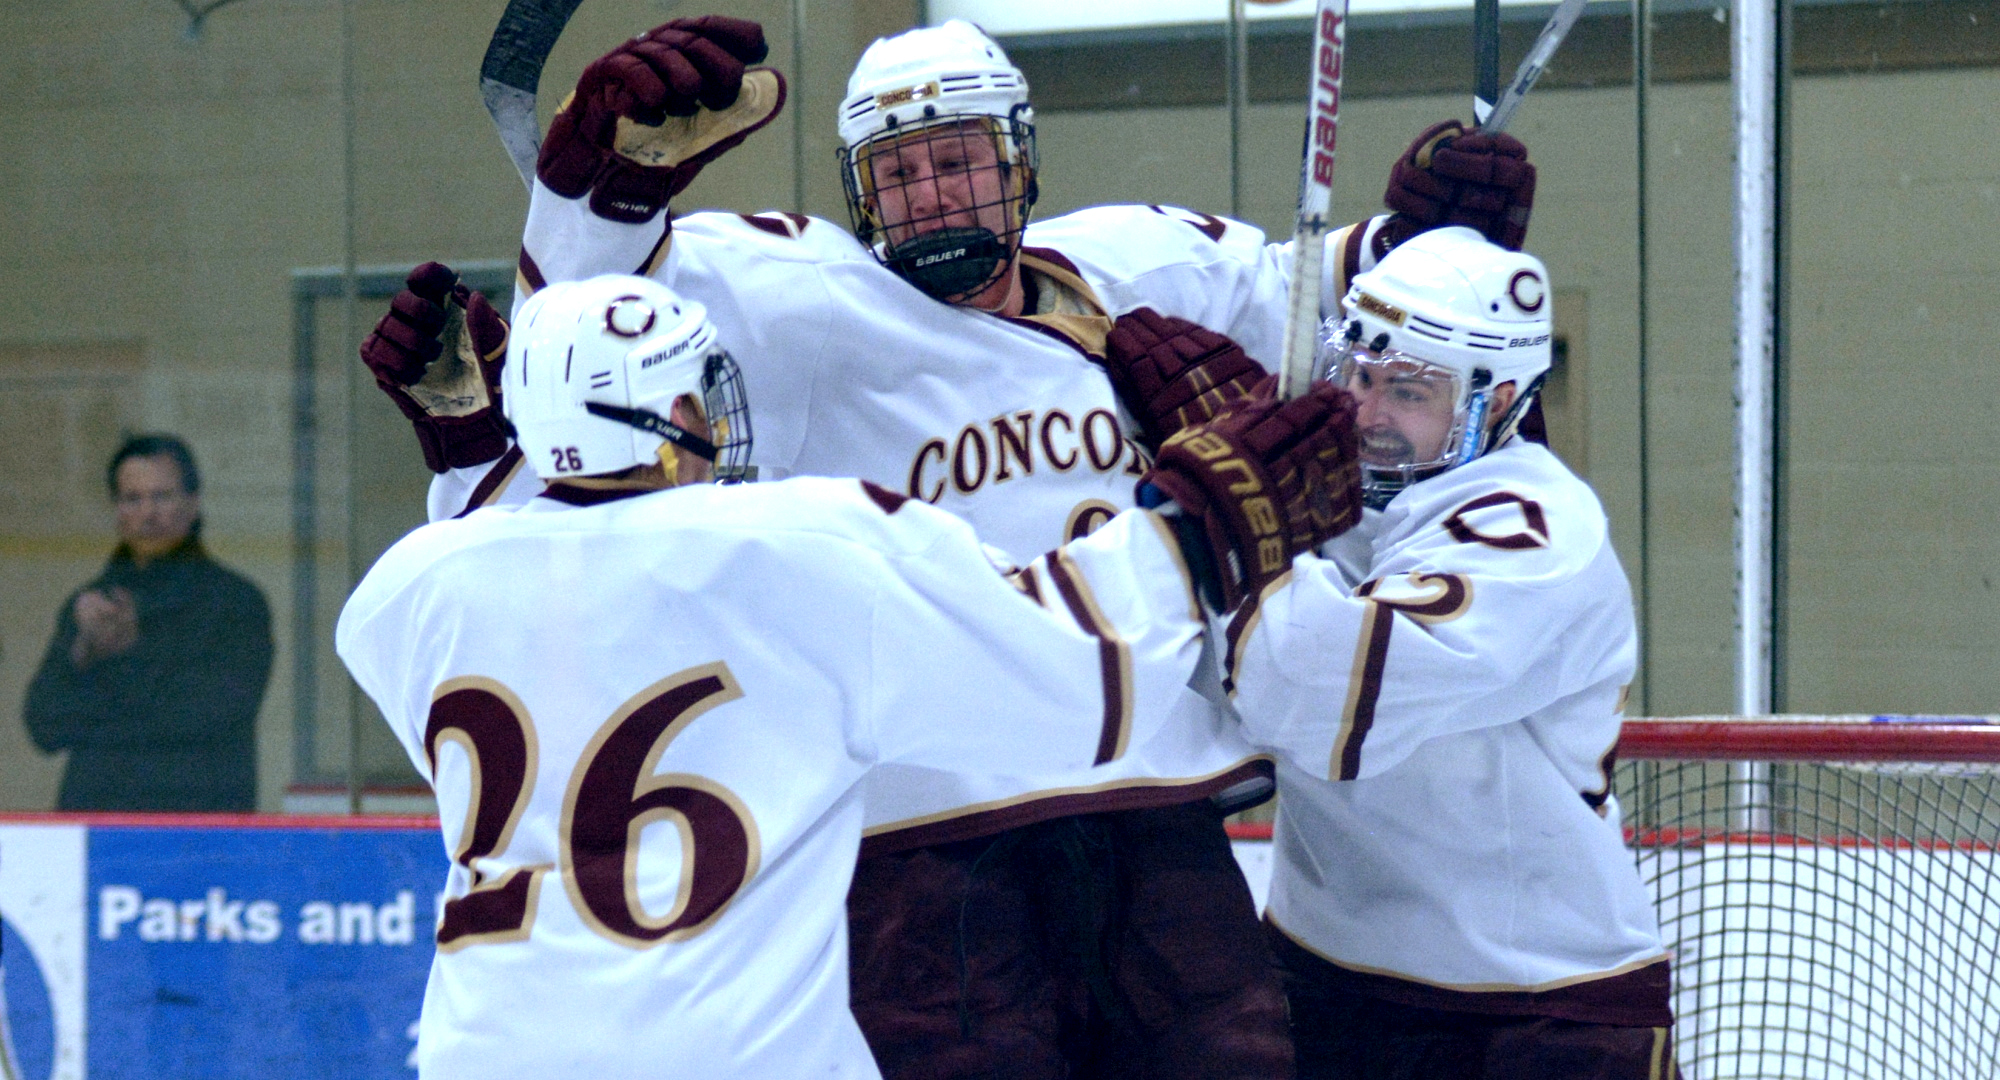 Jon Grebosky celebrates his third-period goal against Hamline with teammates Connor Kelly (R) and Quinn Fuchs (#26) during the Cobbers' shootout win over the Pipers.